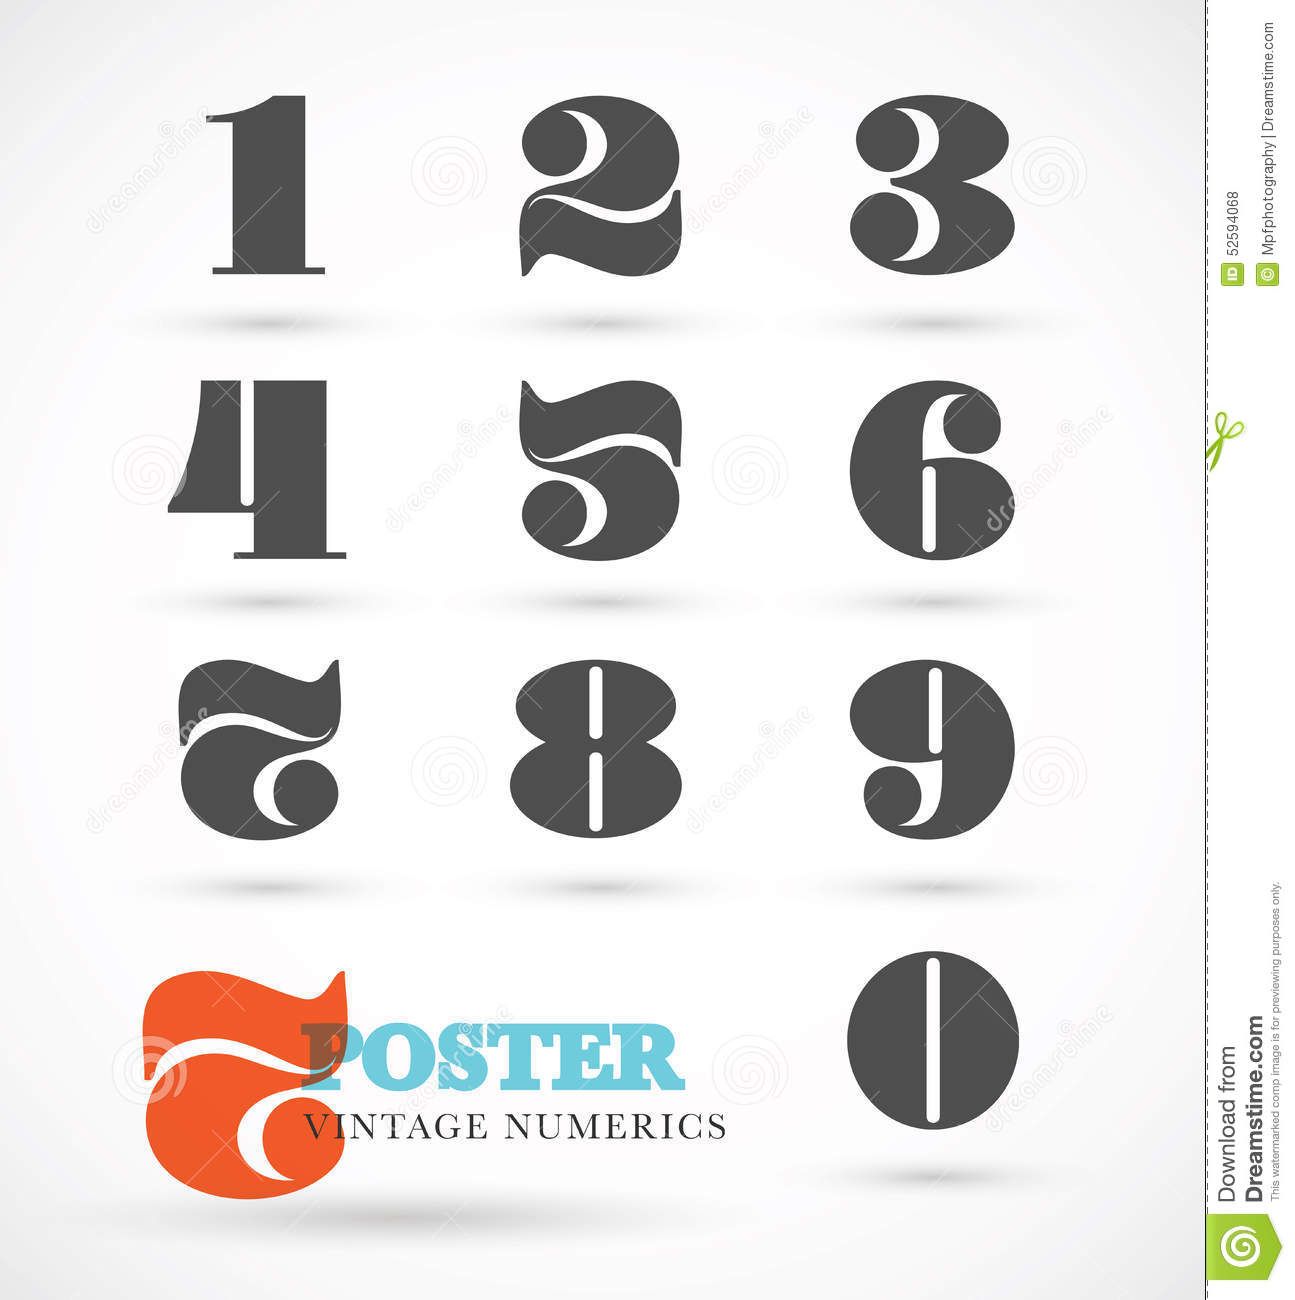 Set Of Vintage And Retro Numeric Font Numbers For Abstract Art Stock Vector